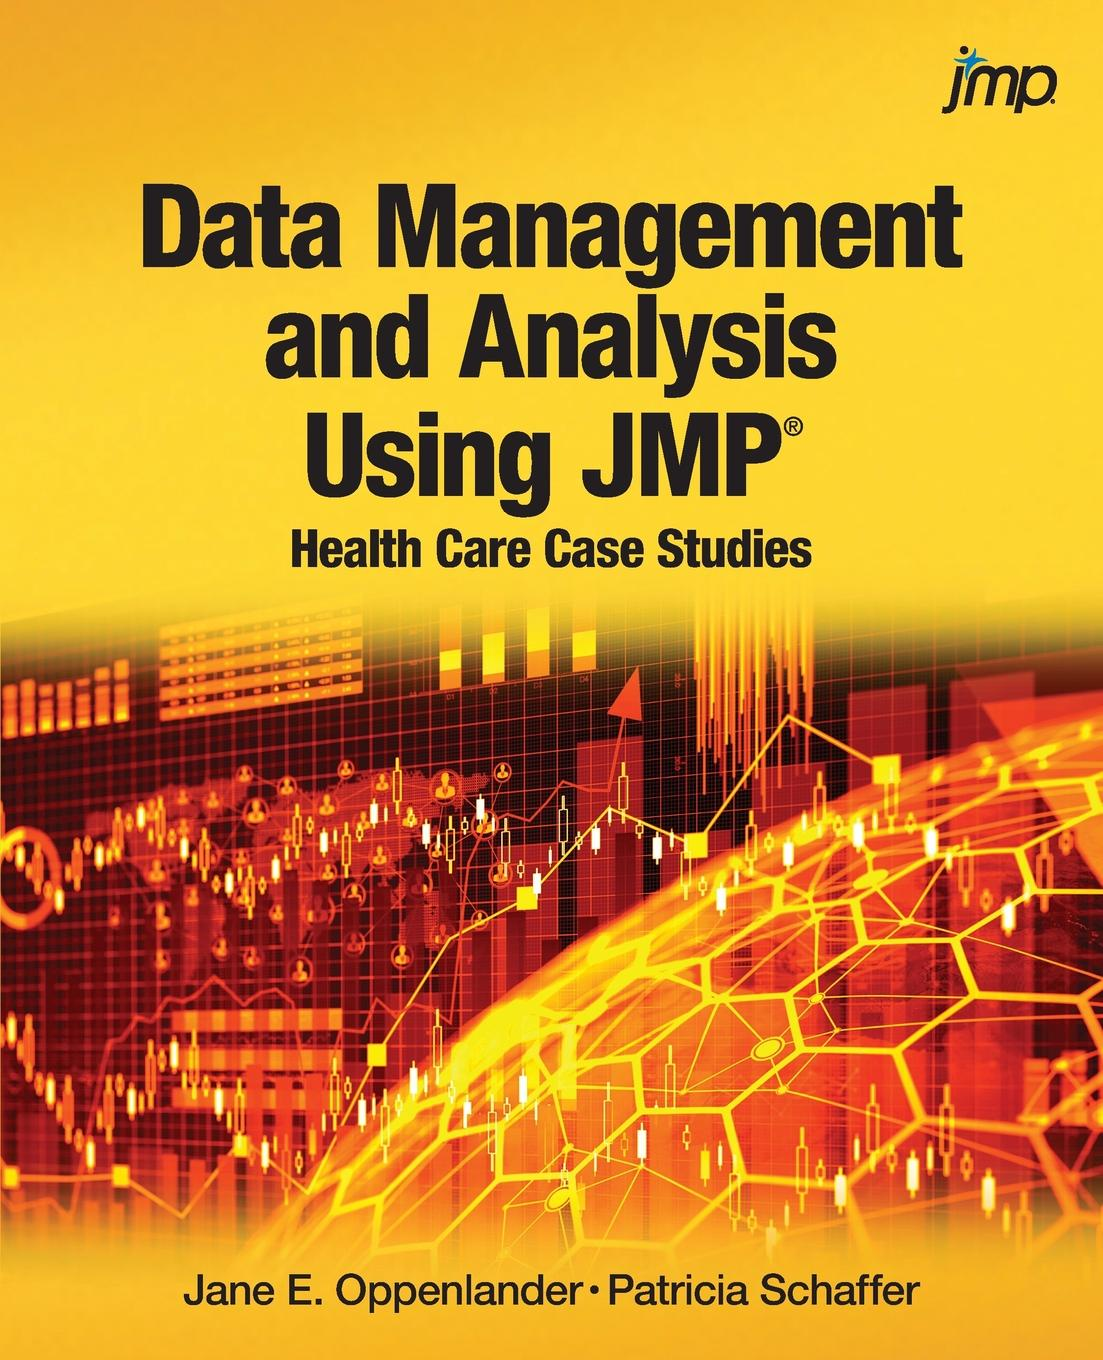 Jane E Oppenlander, Patricia Schaffer Data Management and Analysis Using JMP. Health Care Case Studies michael archer d the forex chartist companion a visual approach to technical analysis